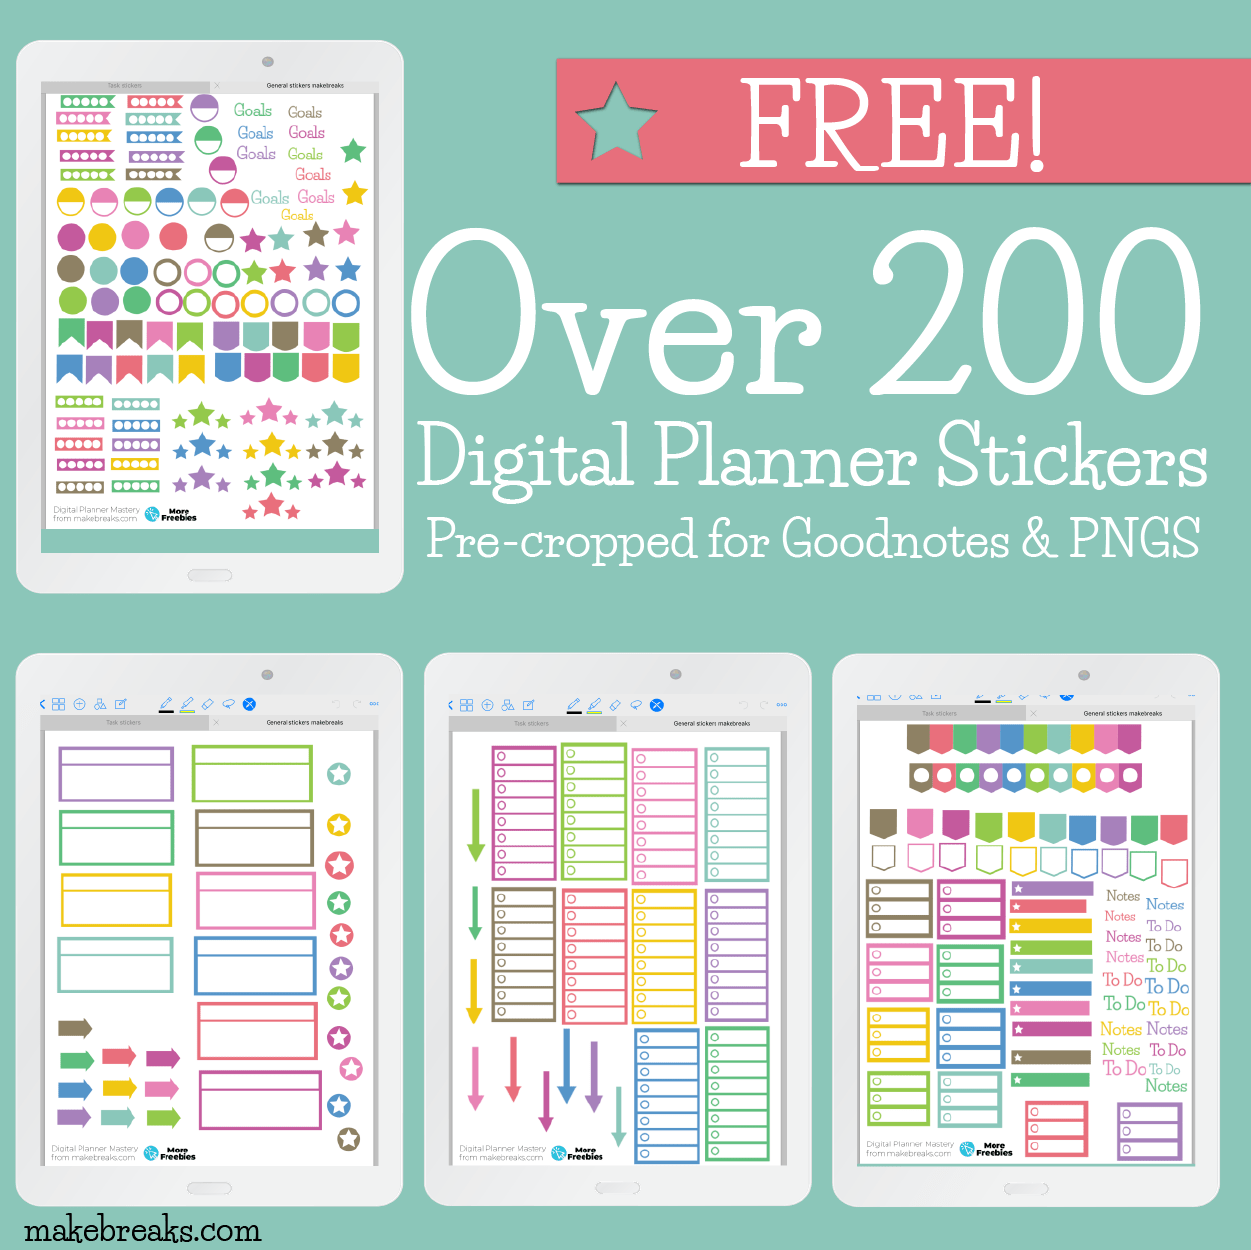 picture regarding Free Digital Planner Pdf named Absolutely free Overall Electronic Stickers For Goodnotes Electronic